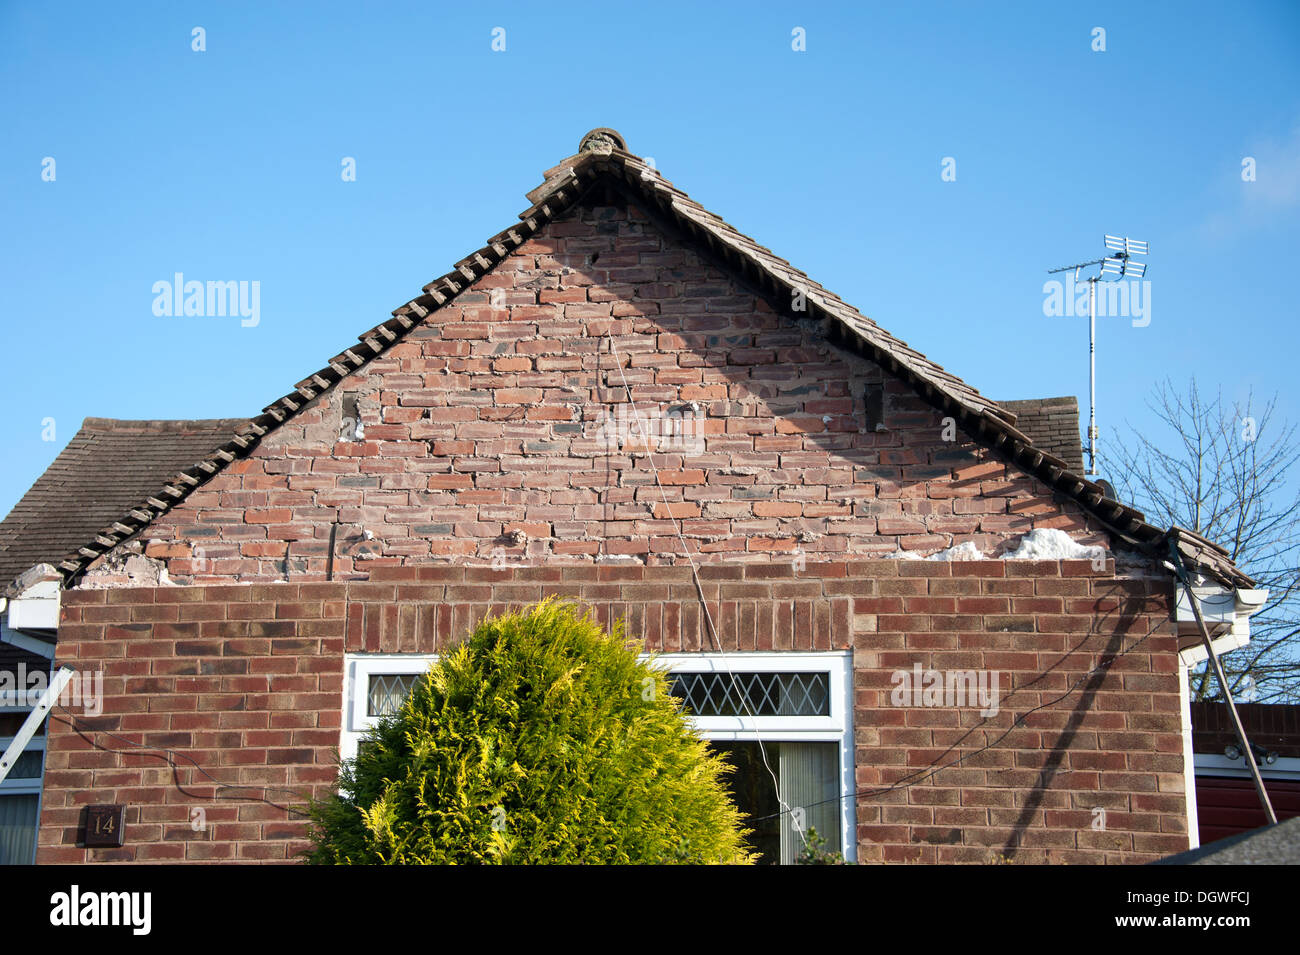 House Gable End Brickwork collapsed ties failed - Stock Image